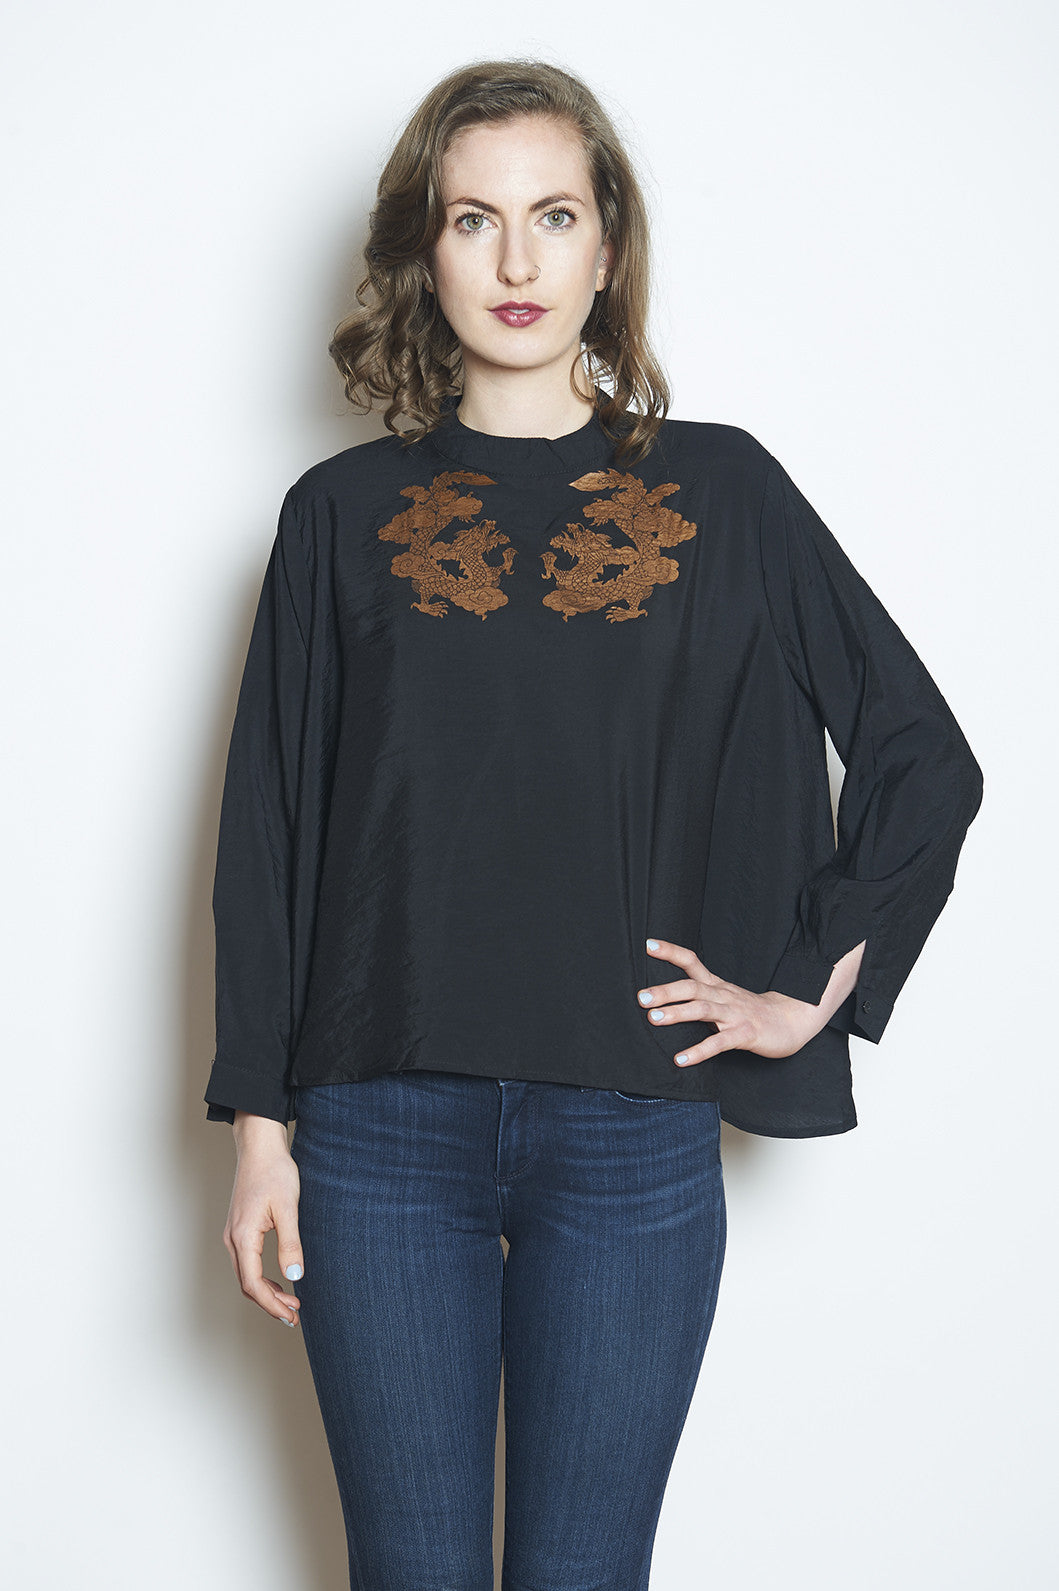 Wabi Sabi Sale Double Happiness top Black